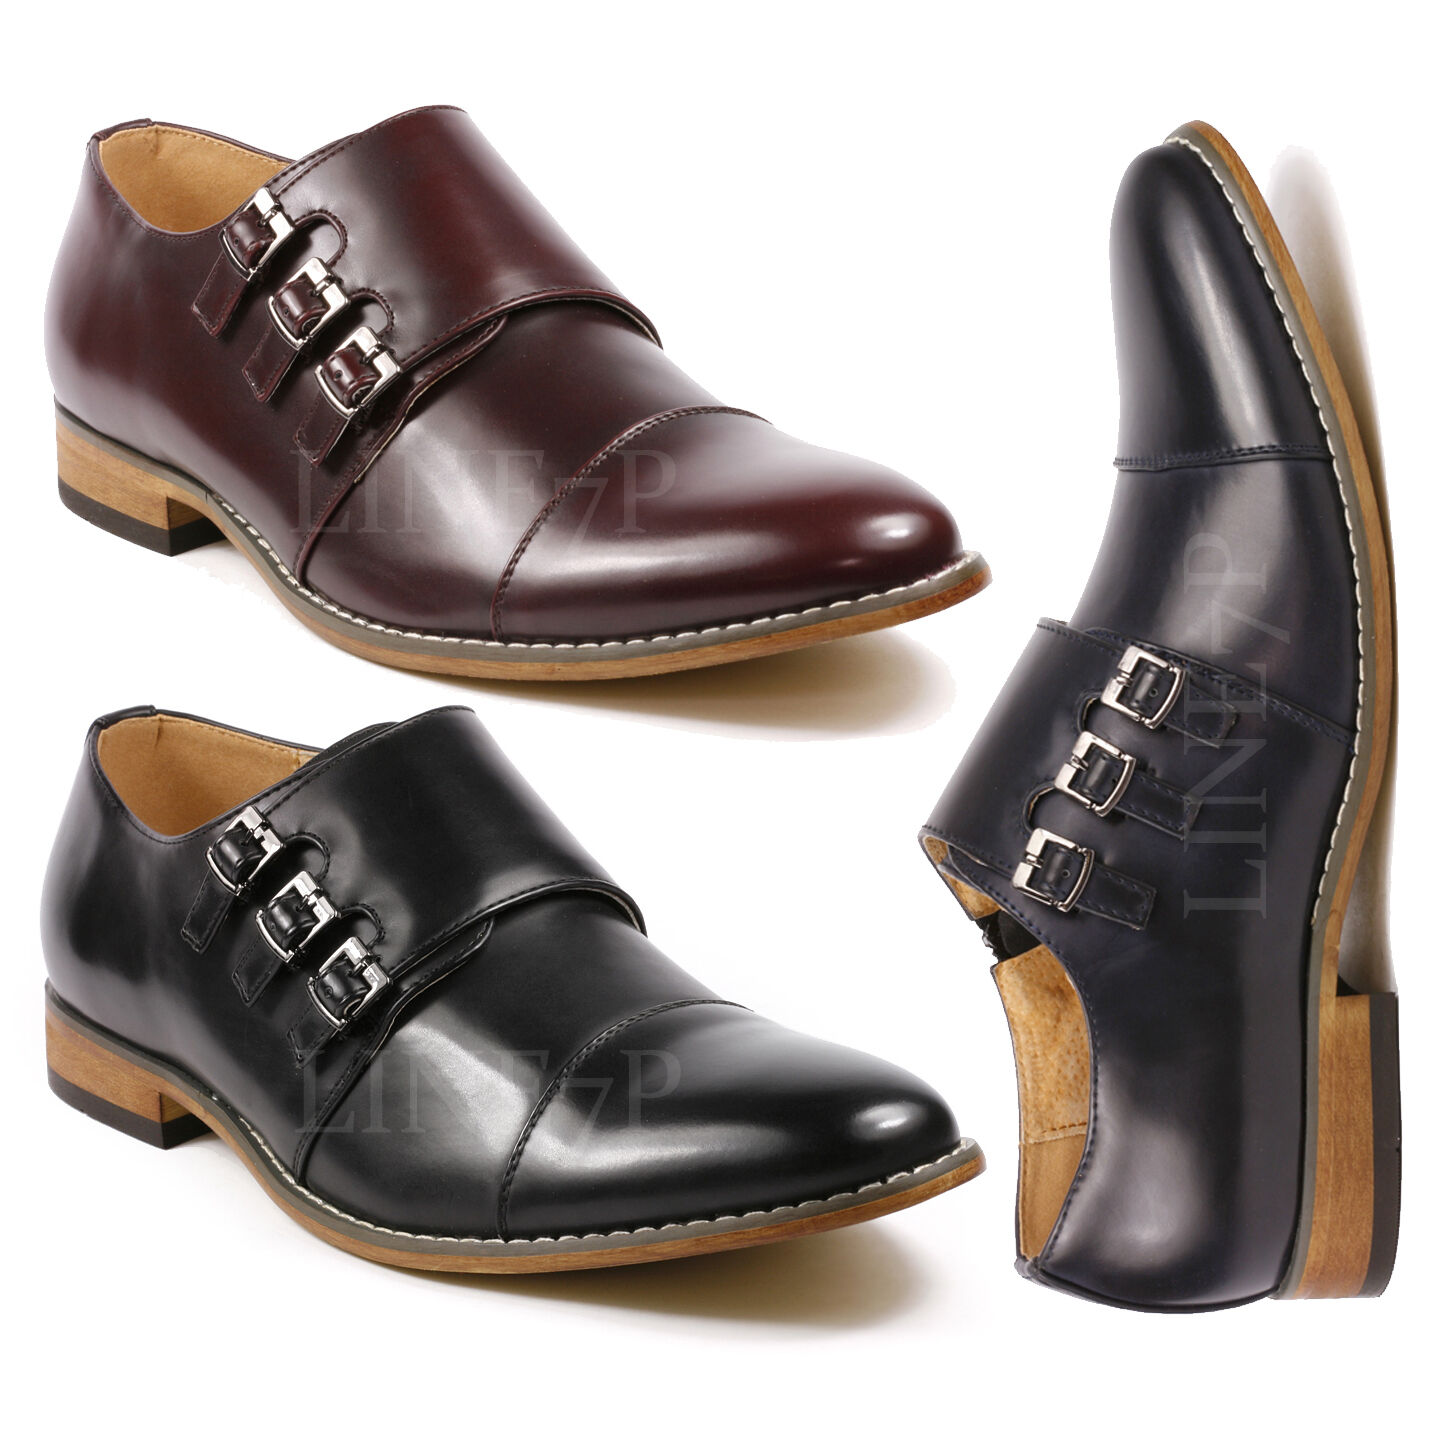 Men's Triple Monk Strap Cap Toe Slip On Loafers Dress Shoes